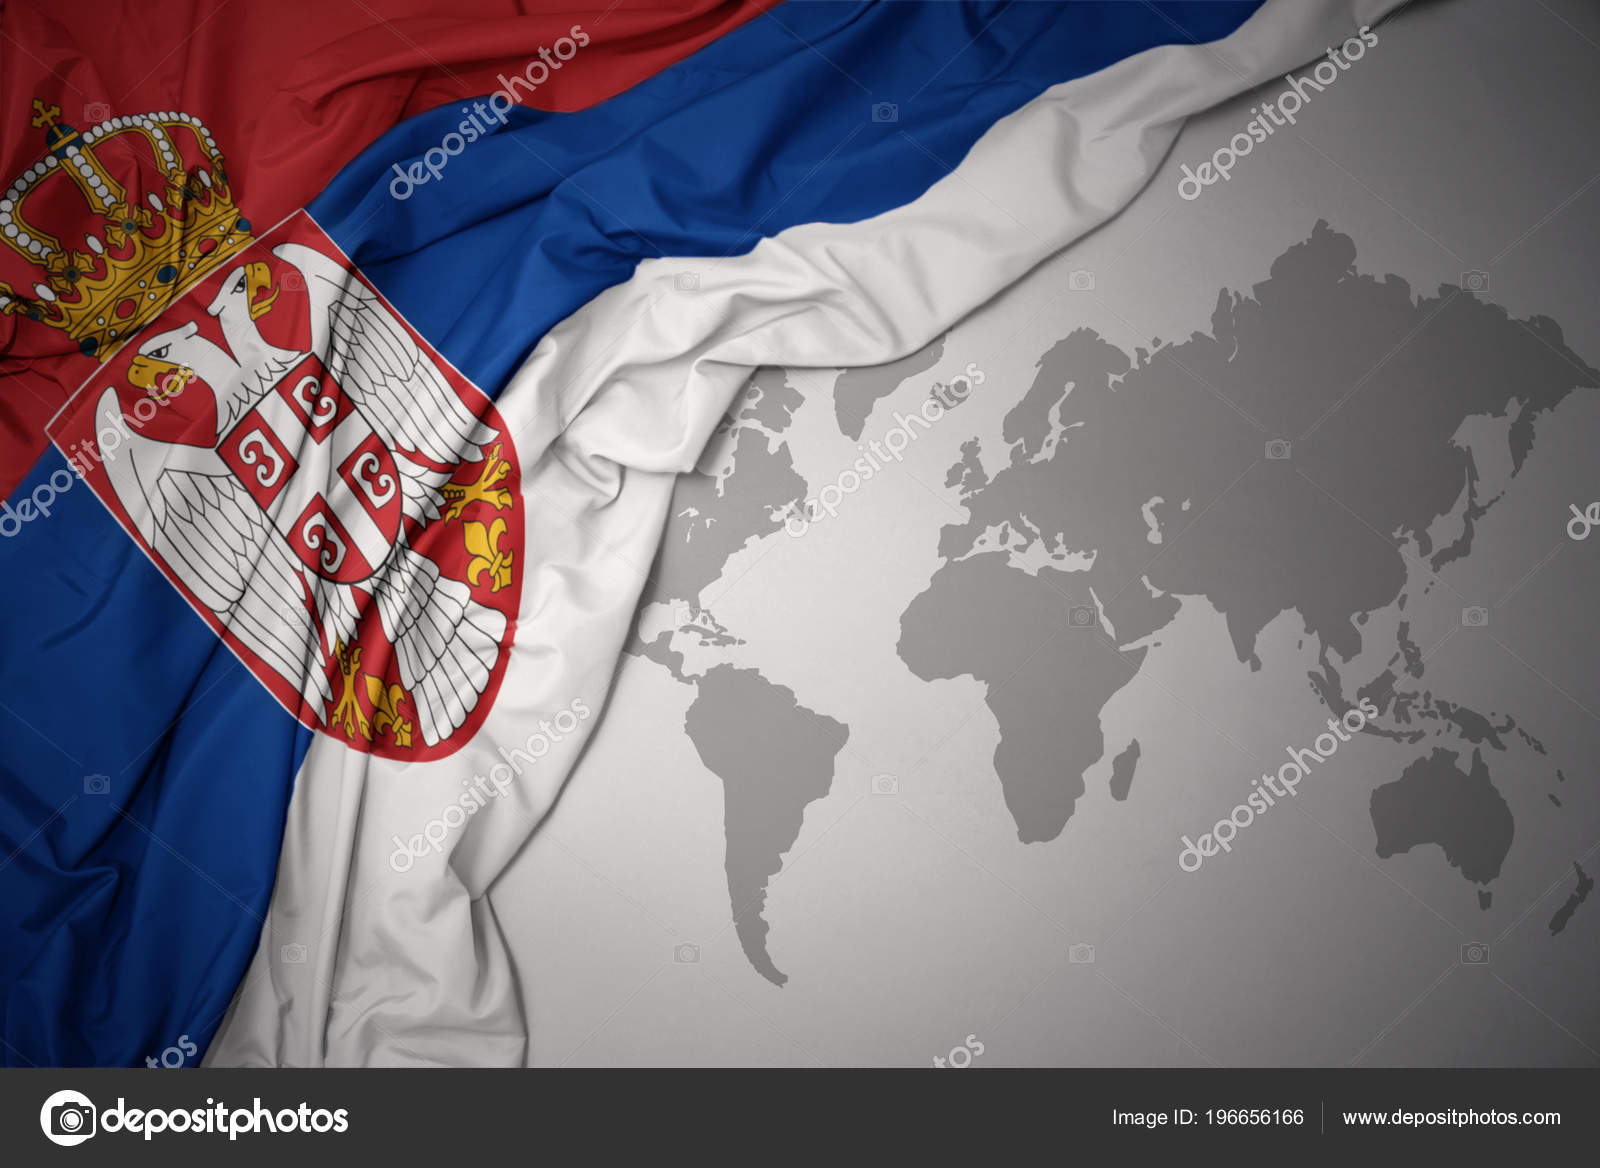 Waving colorful national flag serbia gray world map background waving colorful national flag serbia gray world map background foto de stock gumiabroncs Image collections